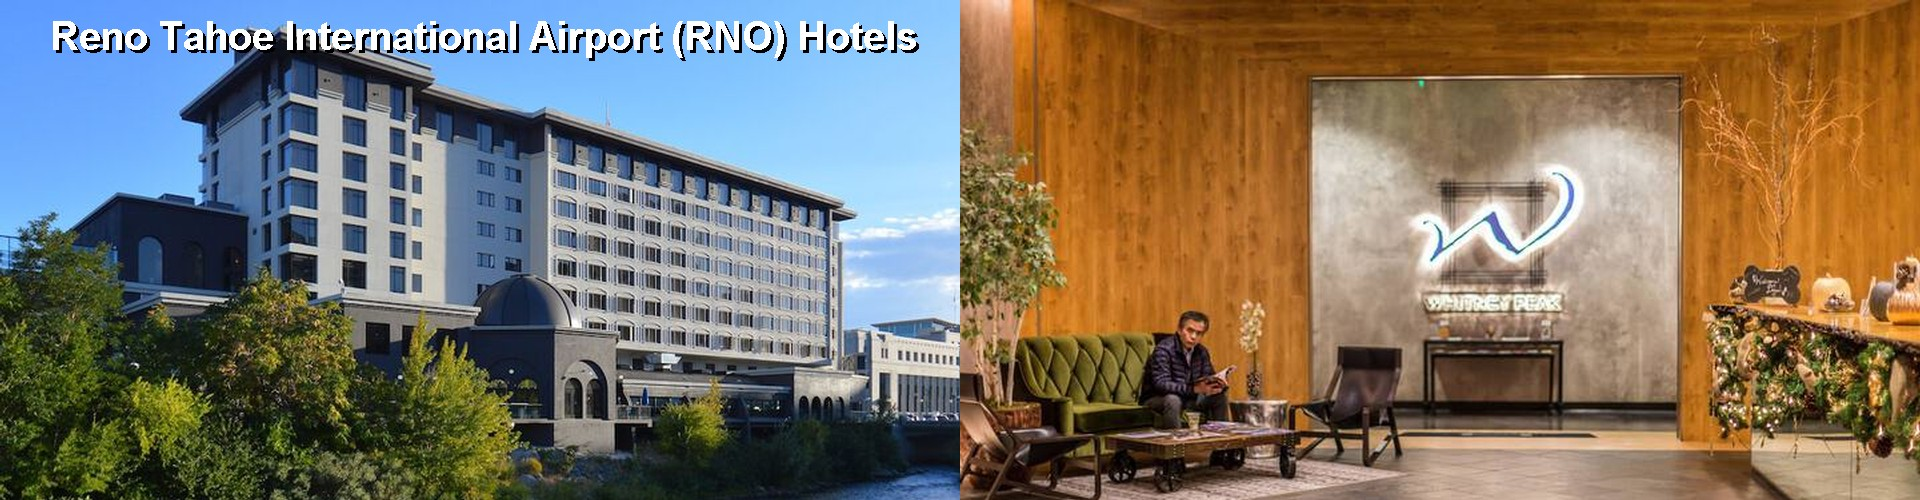 5 Best Hotels near Reno Tahoe International Airport (RNO)